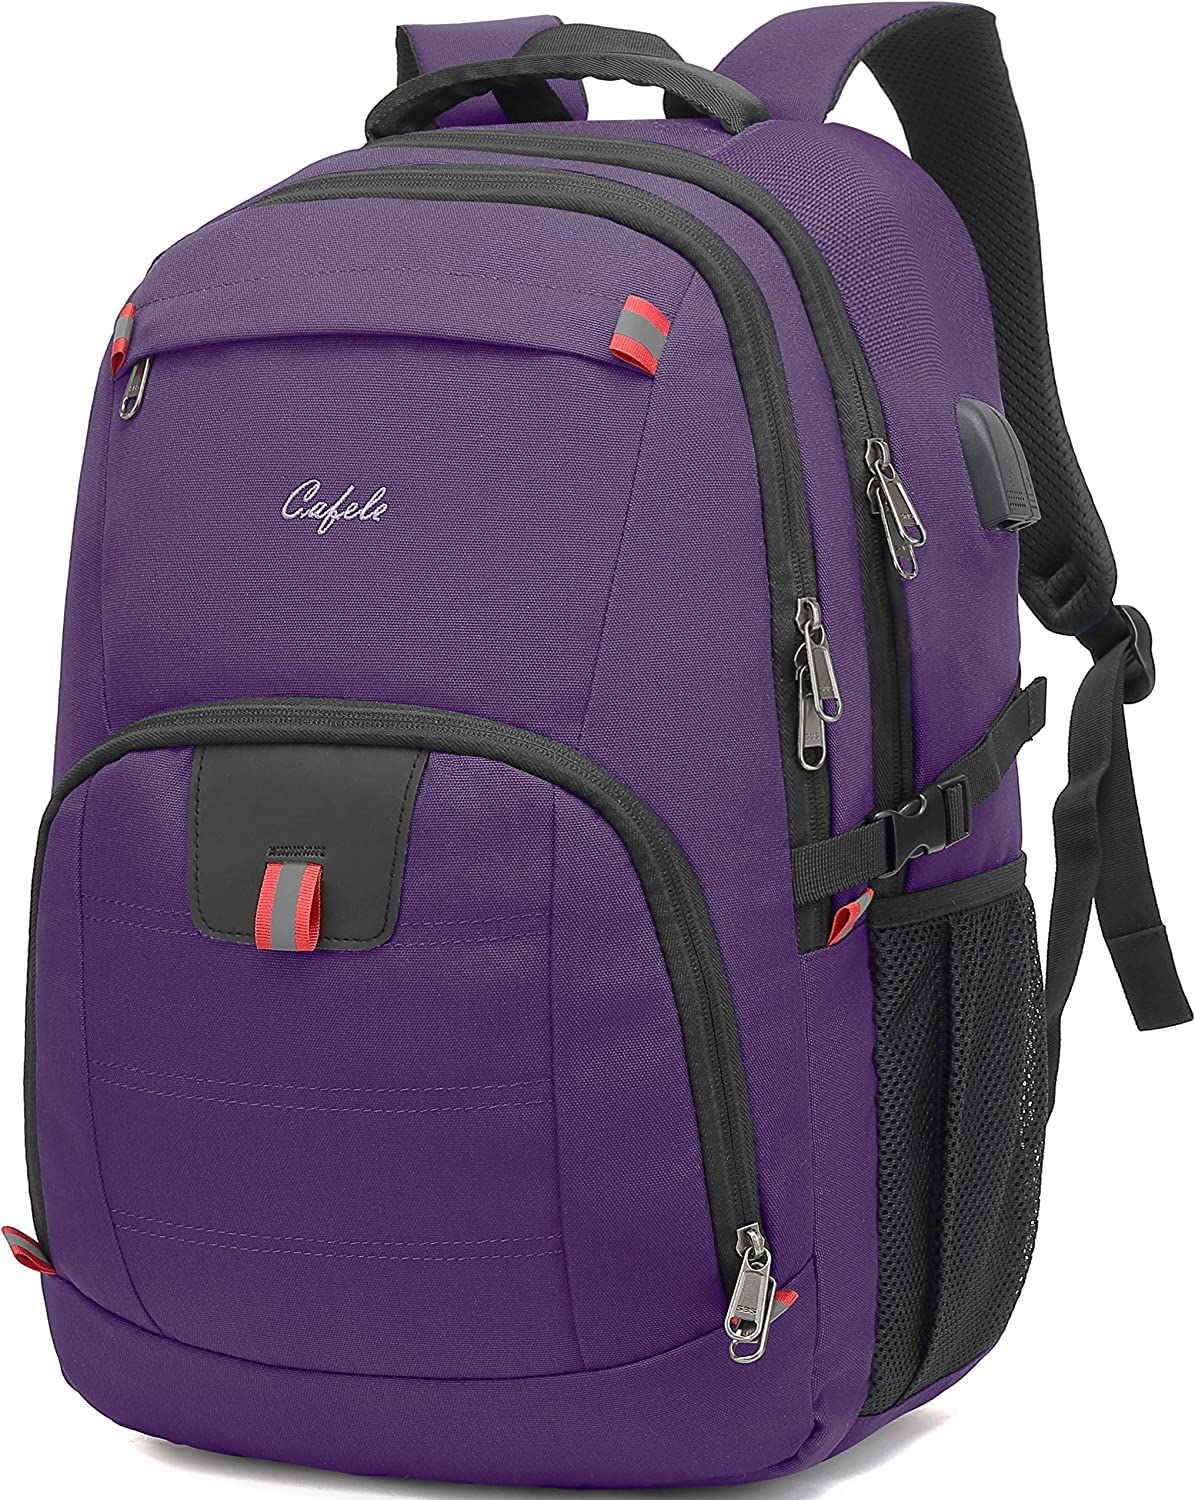 CAFELE Travel Laptop Backpack 17.3 inch,Extra Large School Backpack Bookbag Computer Rucksack with USB Charging Port,Water Resistant Backpacks for Business College Travel,Women Casual Daypack,Purple